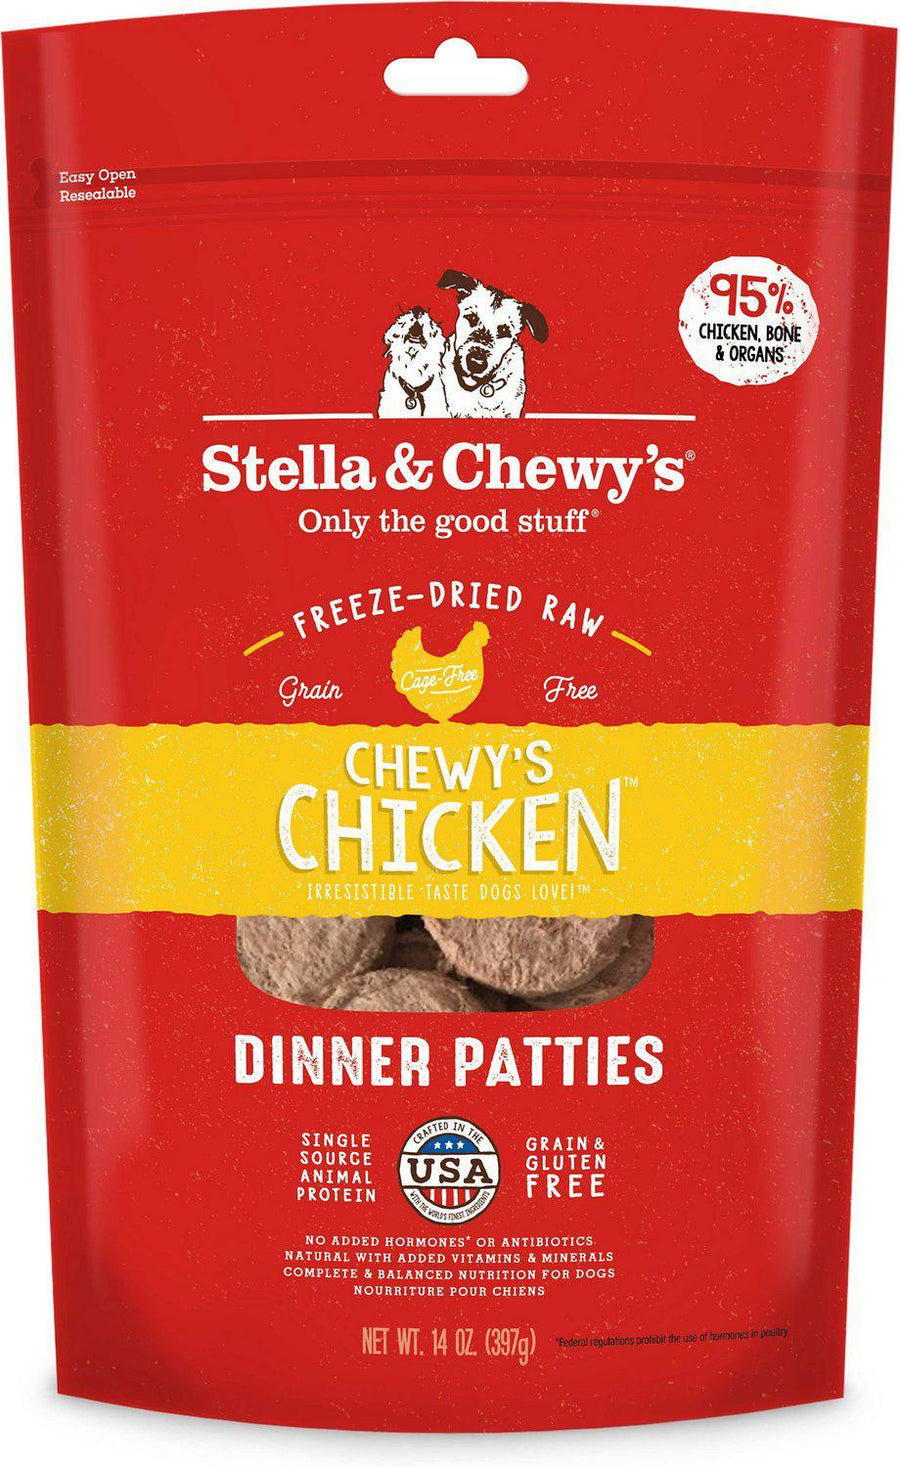 Stella & Chewy's Chewy's Chicken Grain-Free Freeze-Dried Raw Dinner Patties Dog Food-Le Pup Pet Supplies and Grooming